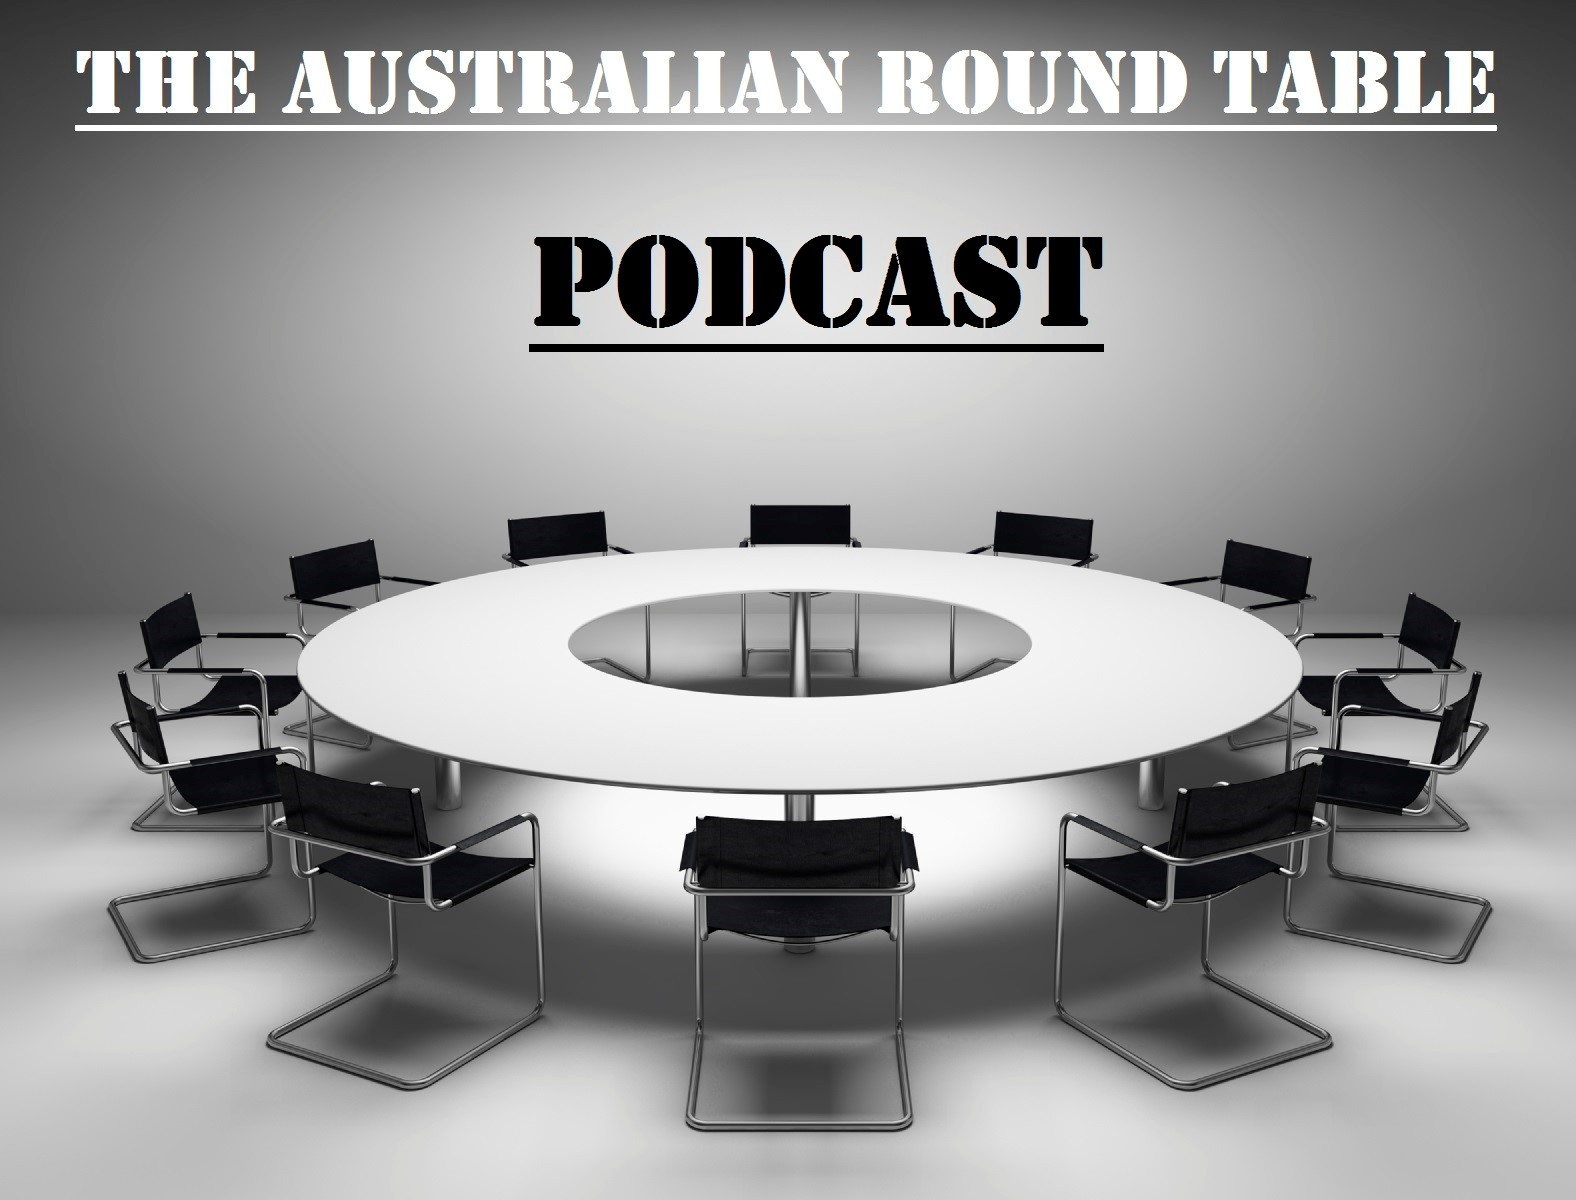 Round Table Podcast.Tott News Presents The Australian Roundtable Podcast Details